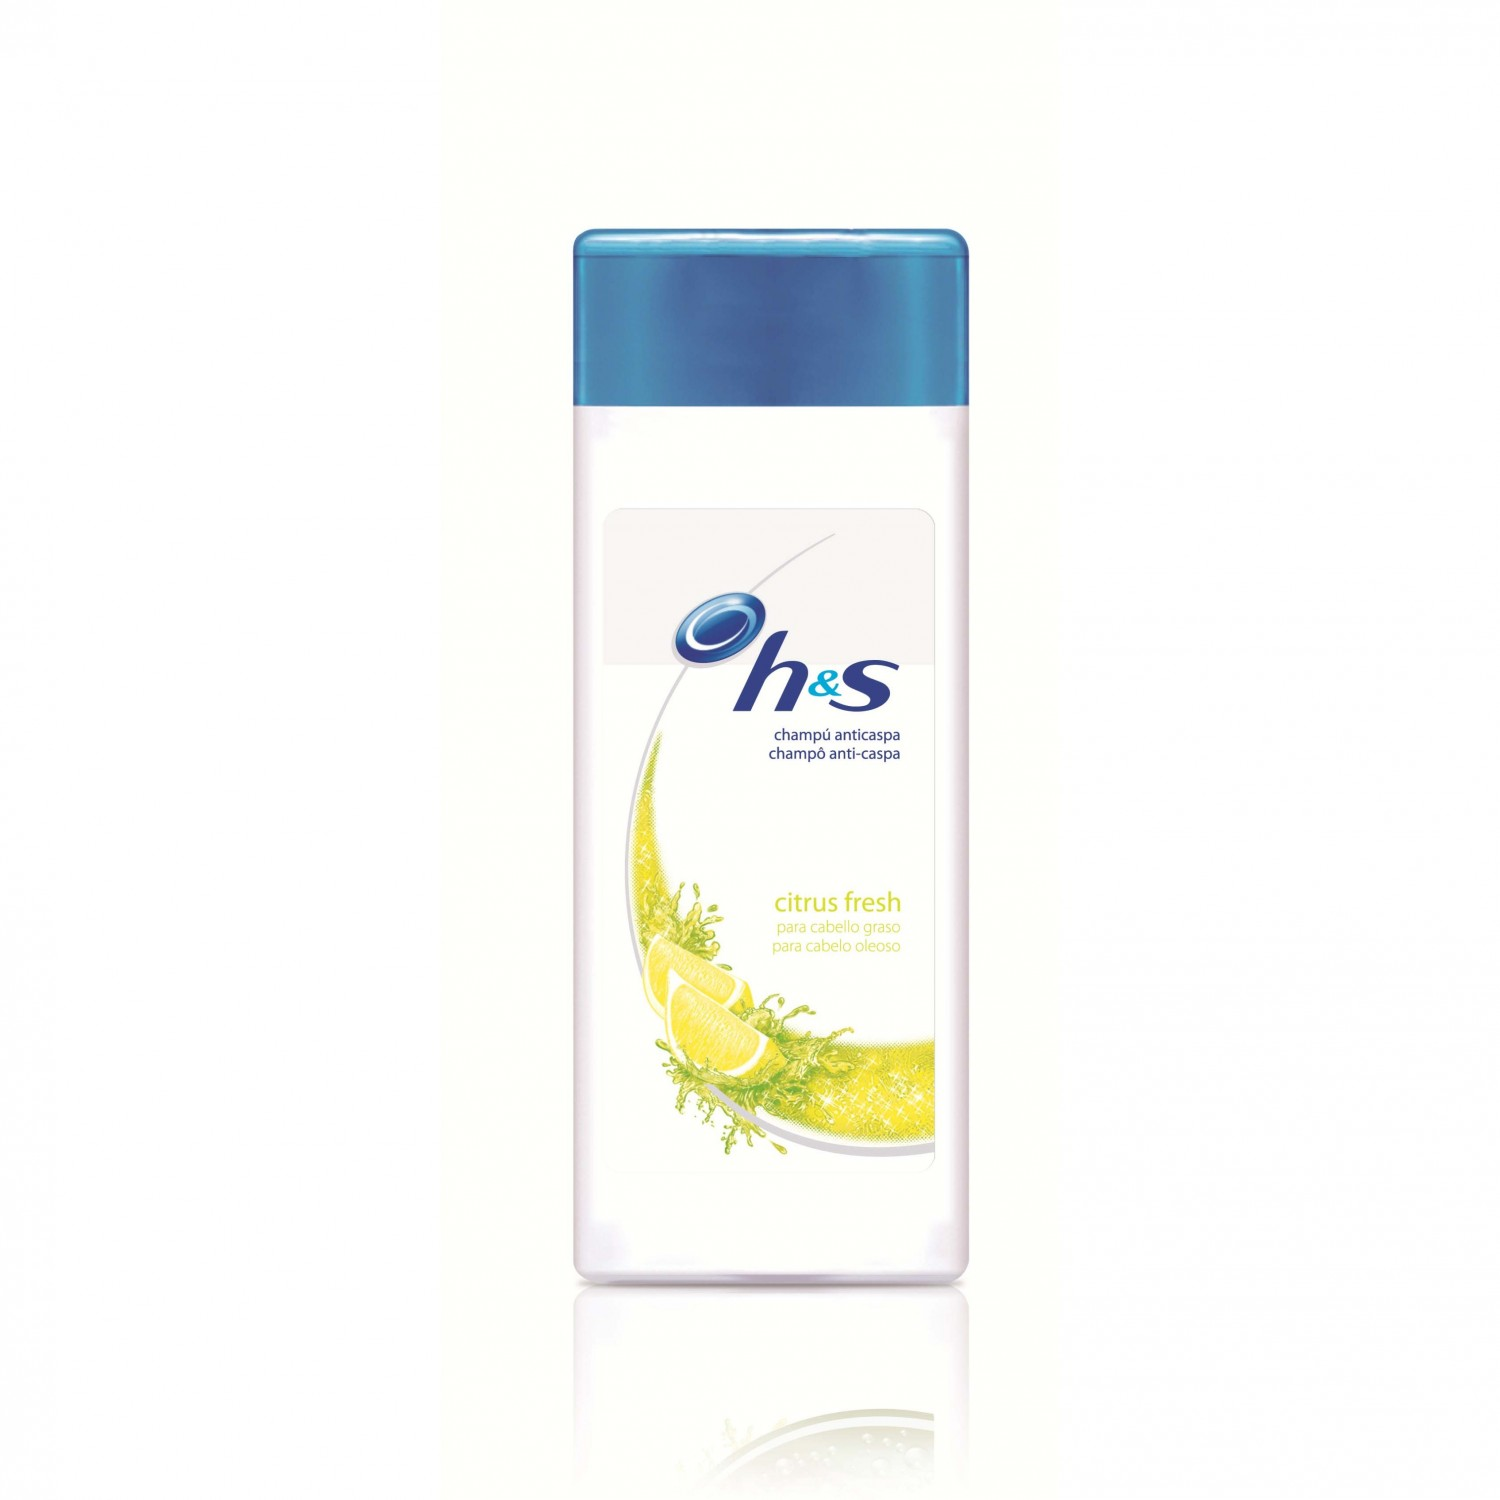 H&s champu citrus fresh de 75ml.